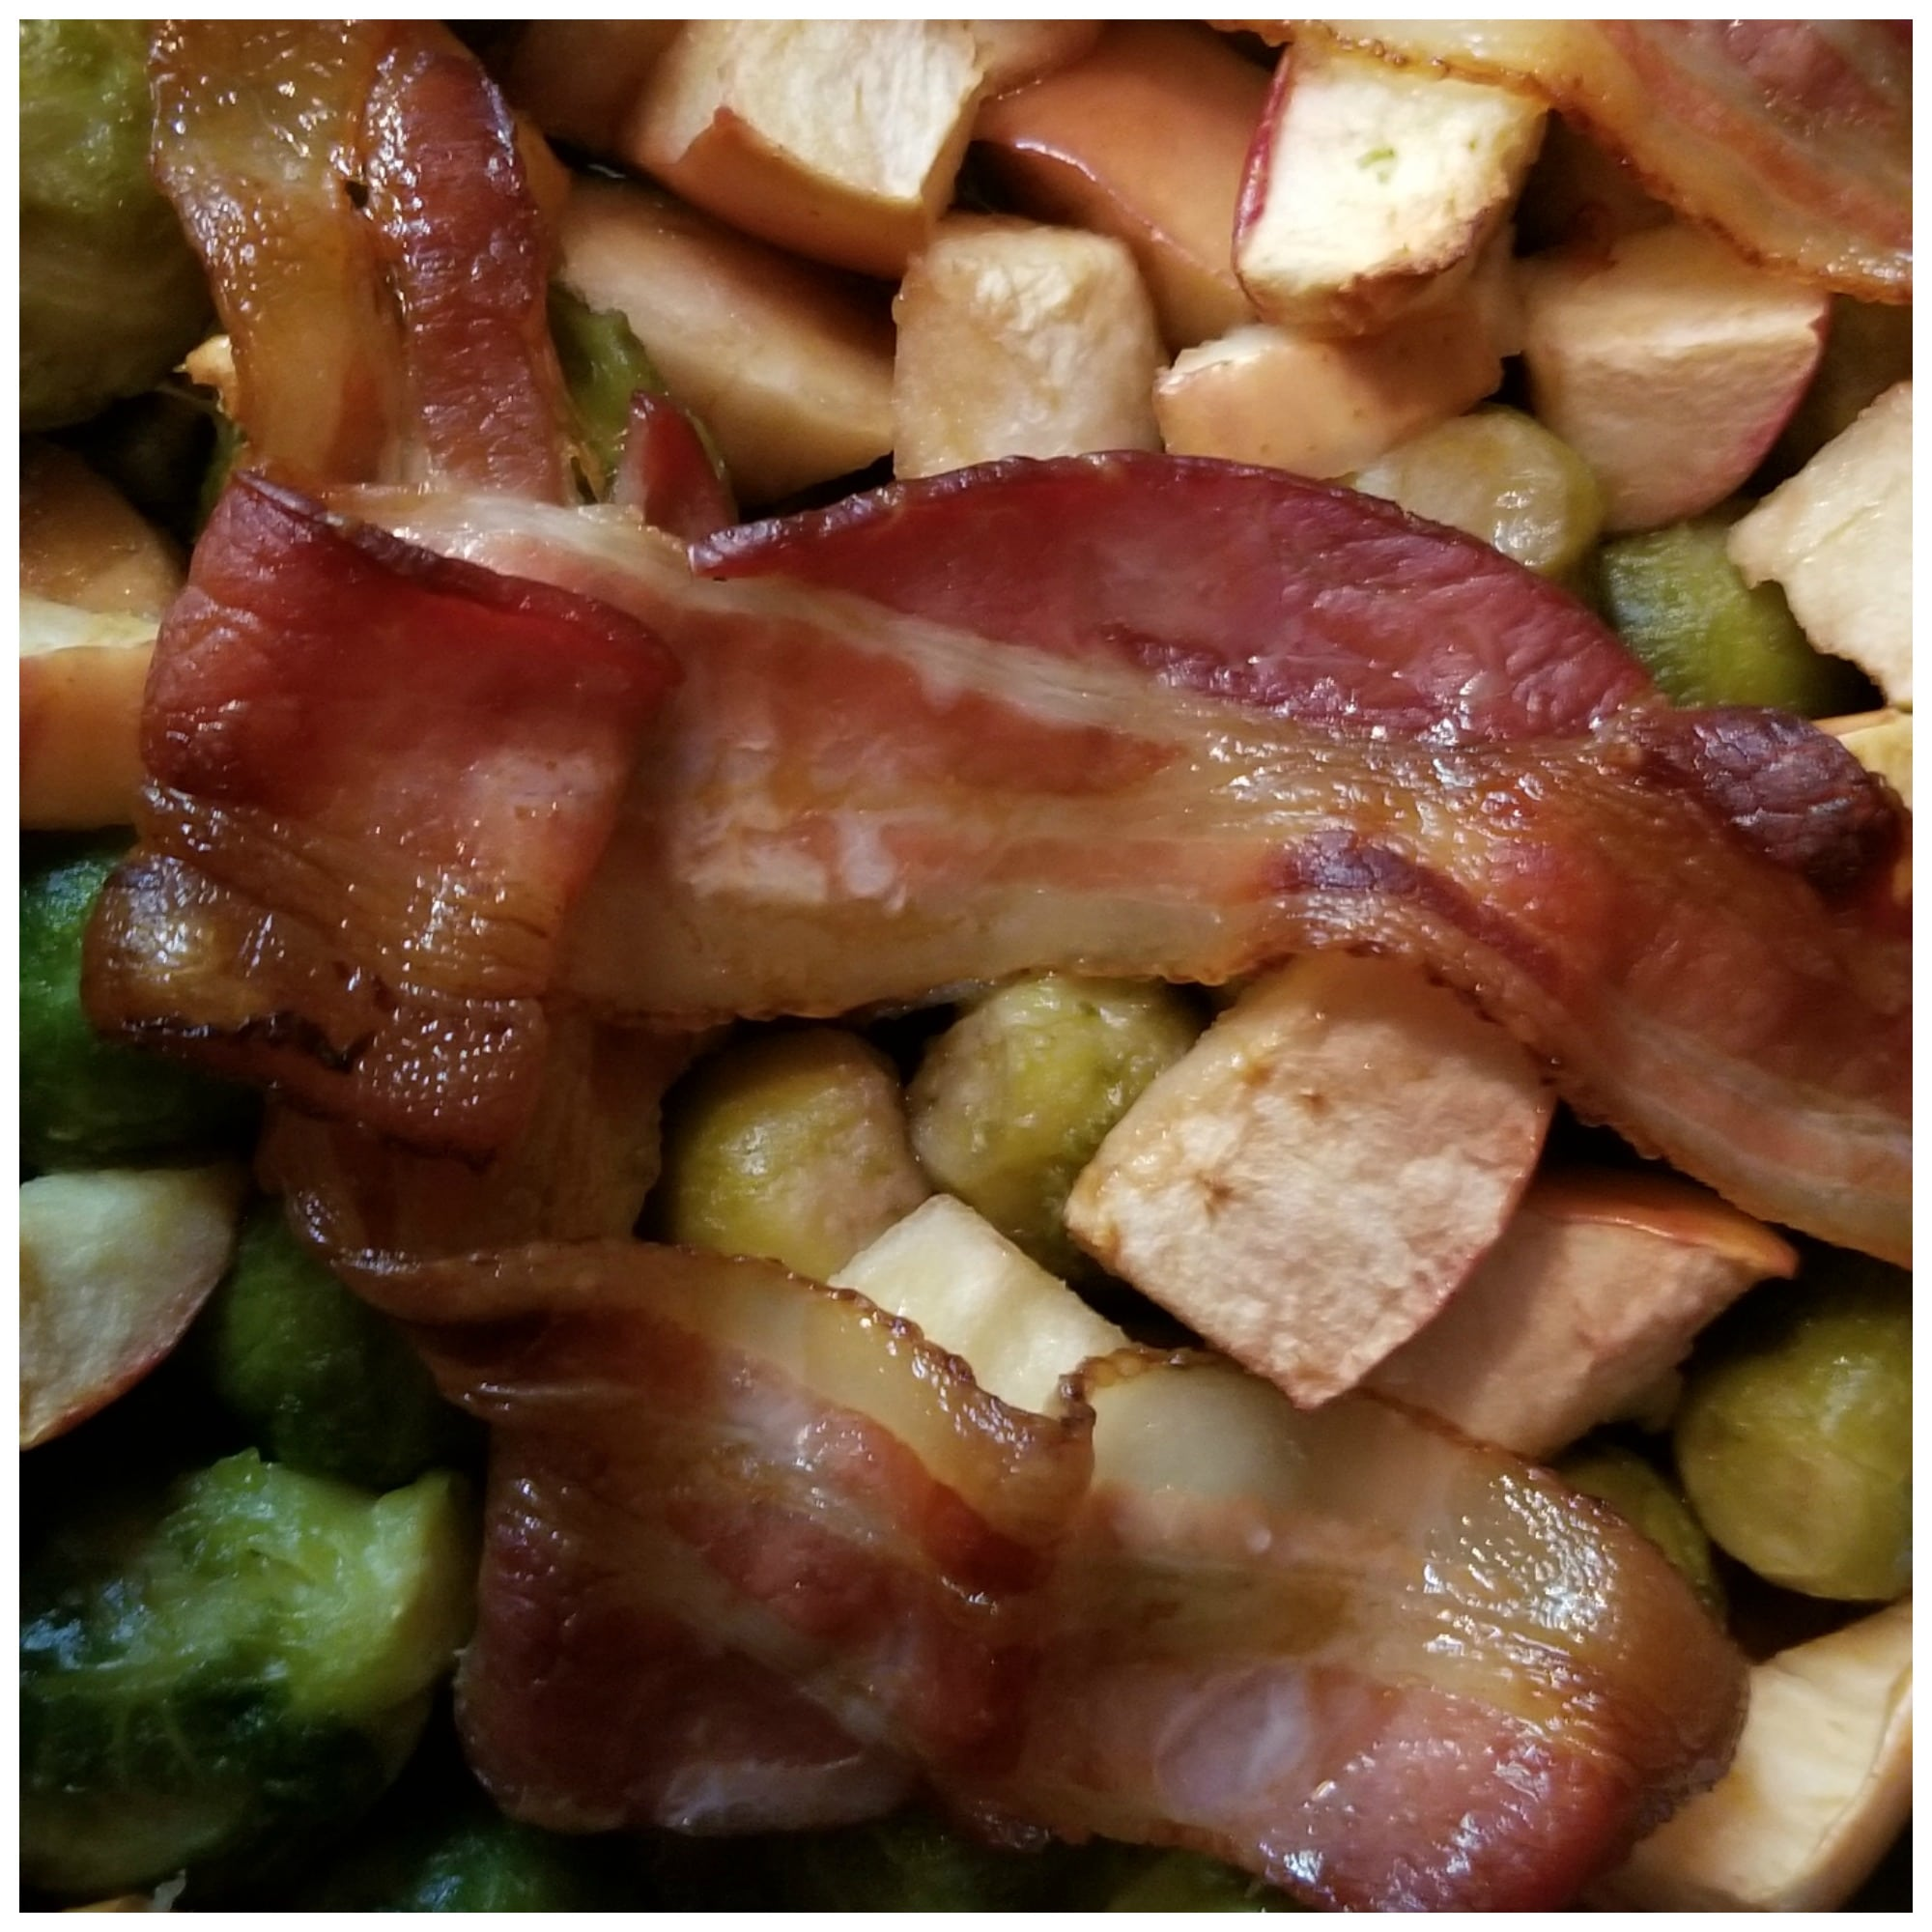 Roasted Brussel sprouts recipe with bacon